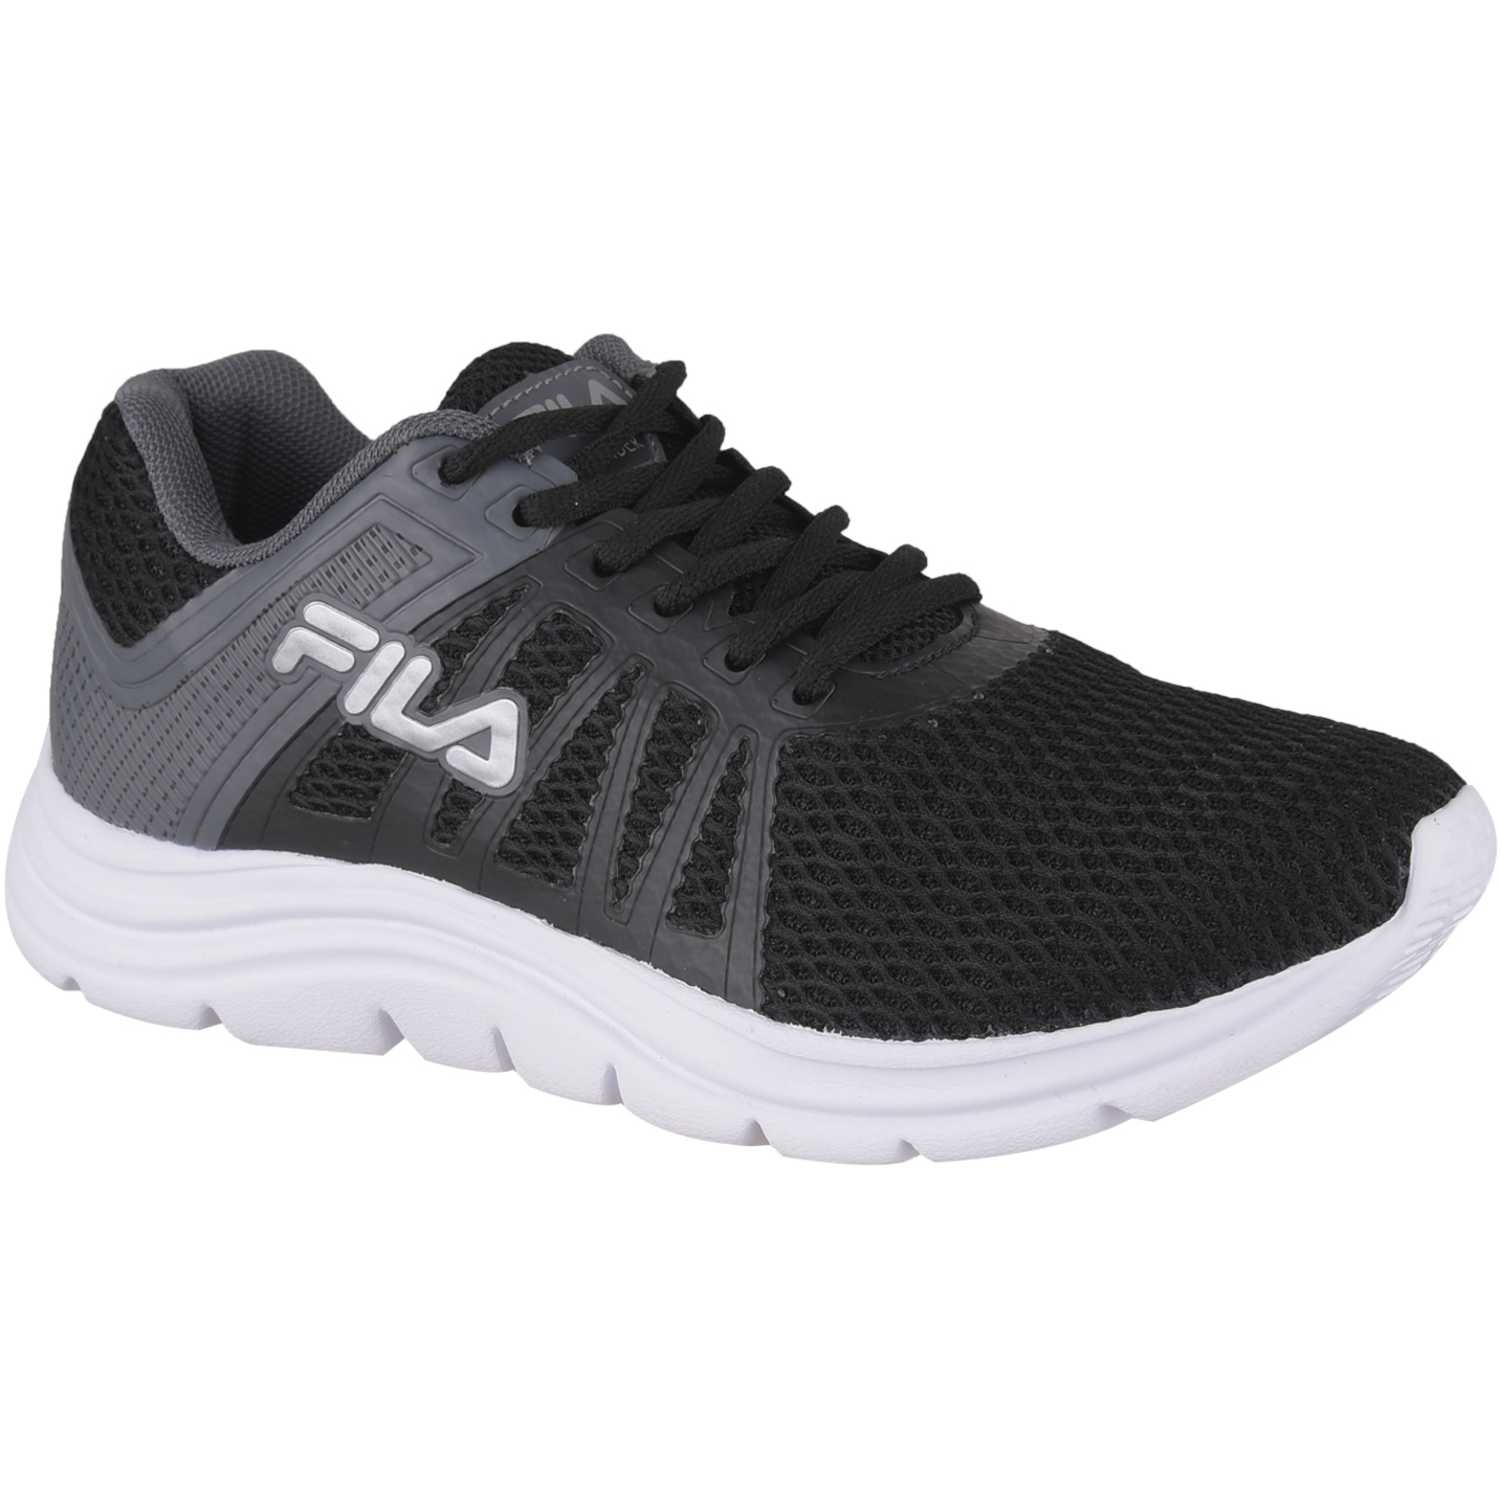 Fila FILA FINDER NEGRO / GRIS Trail Running